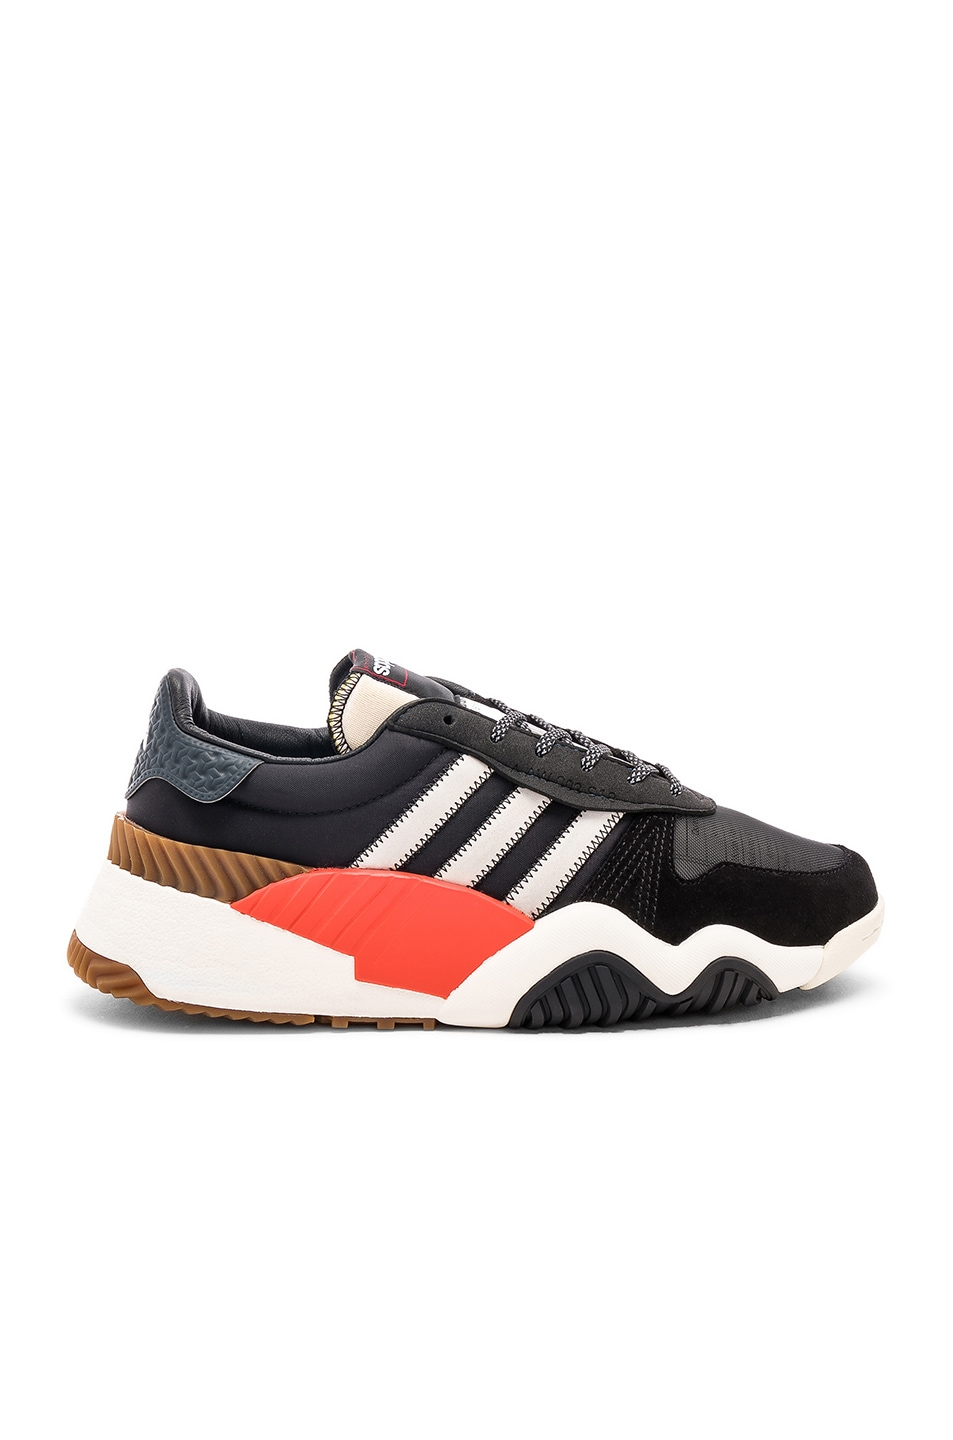 Image 2 of adidas by Alexander Wang Trainers in Core Black & Core White & Borang